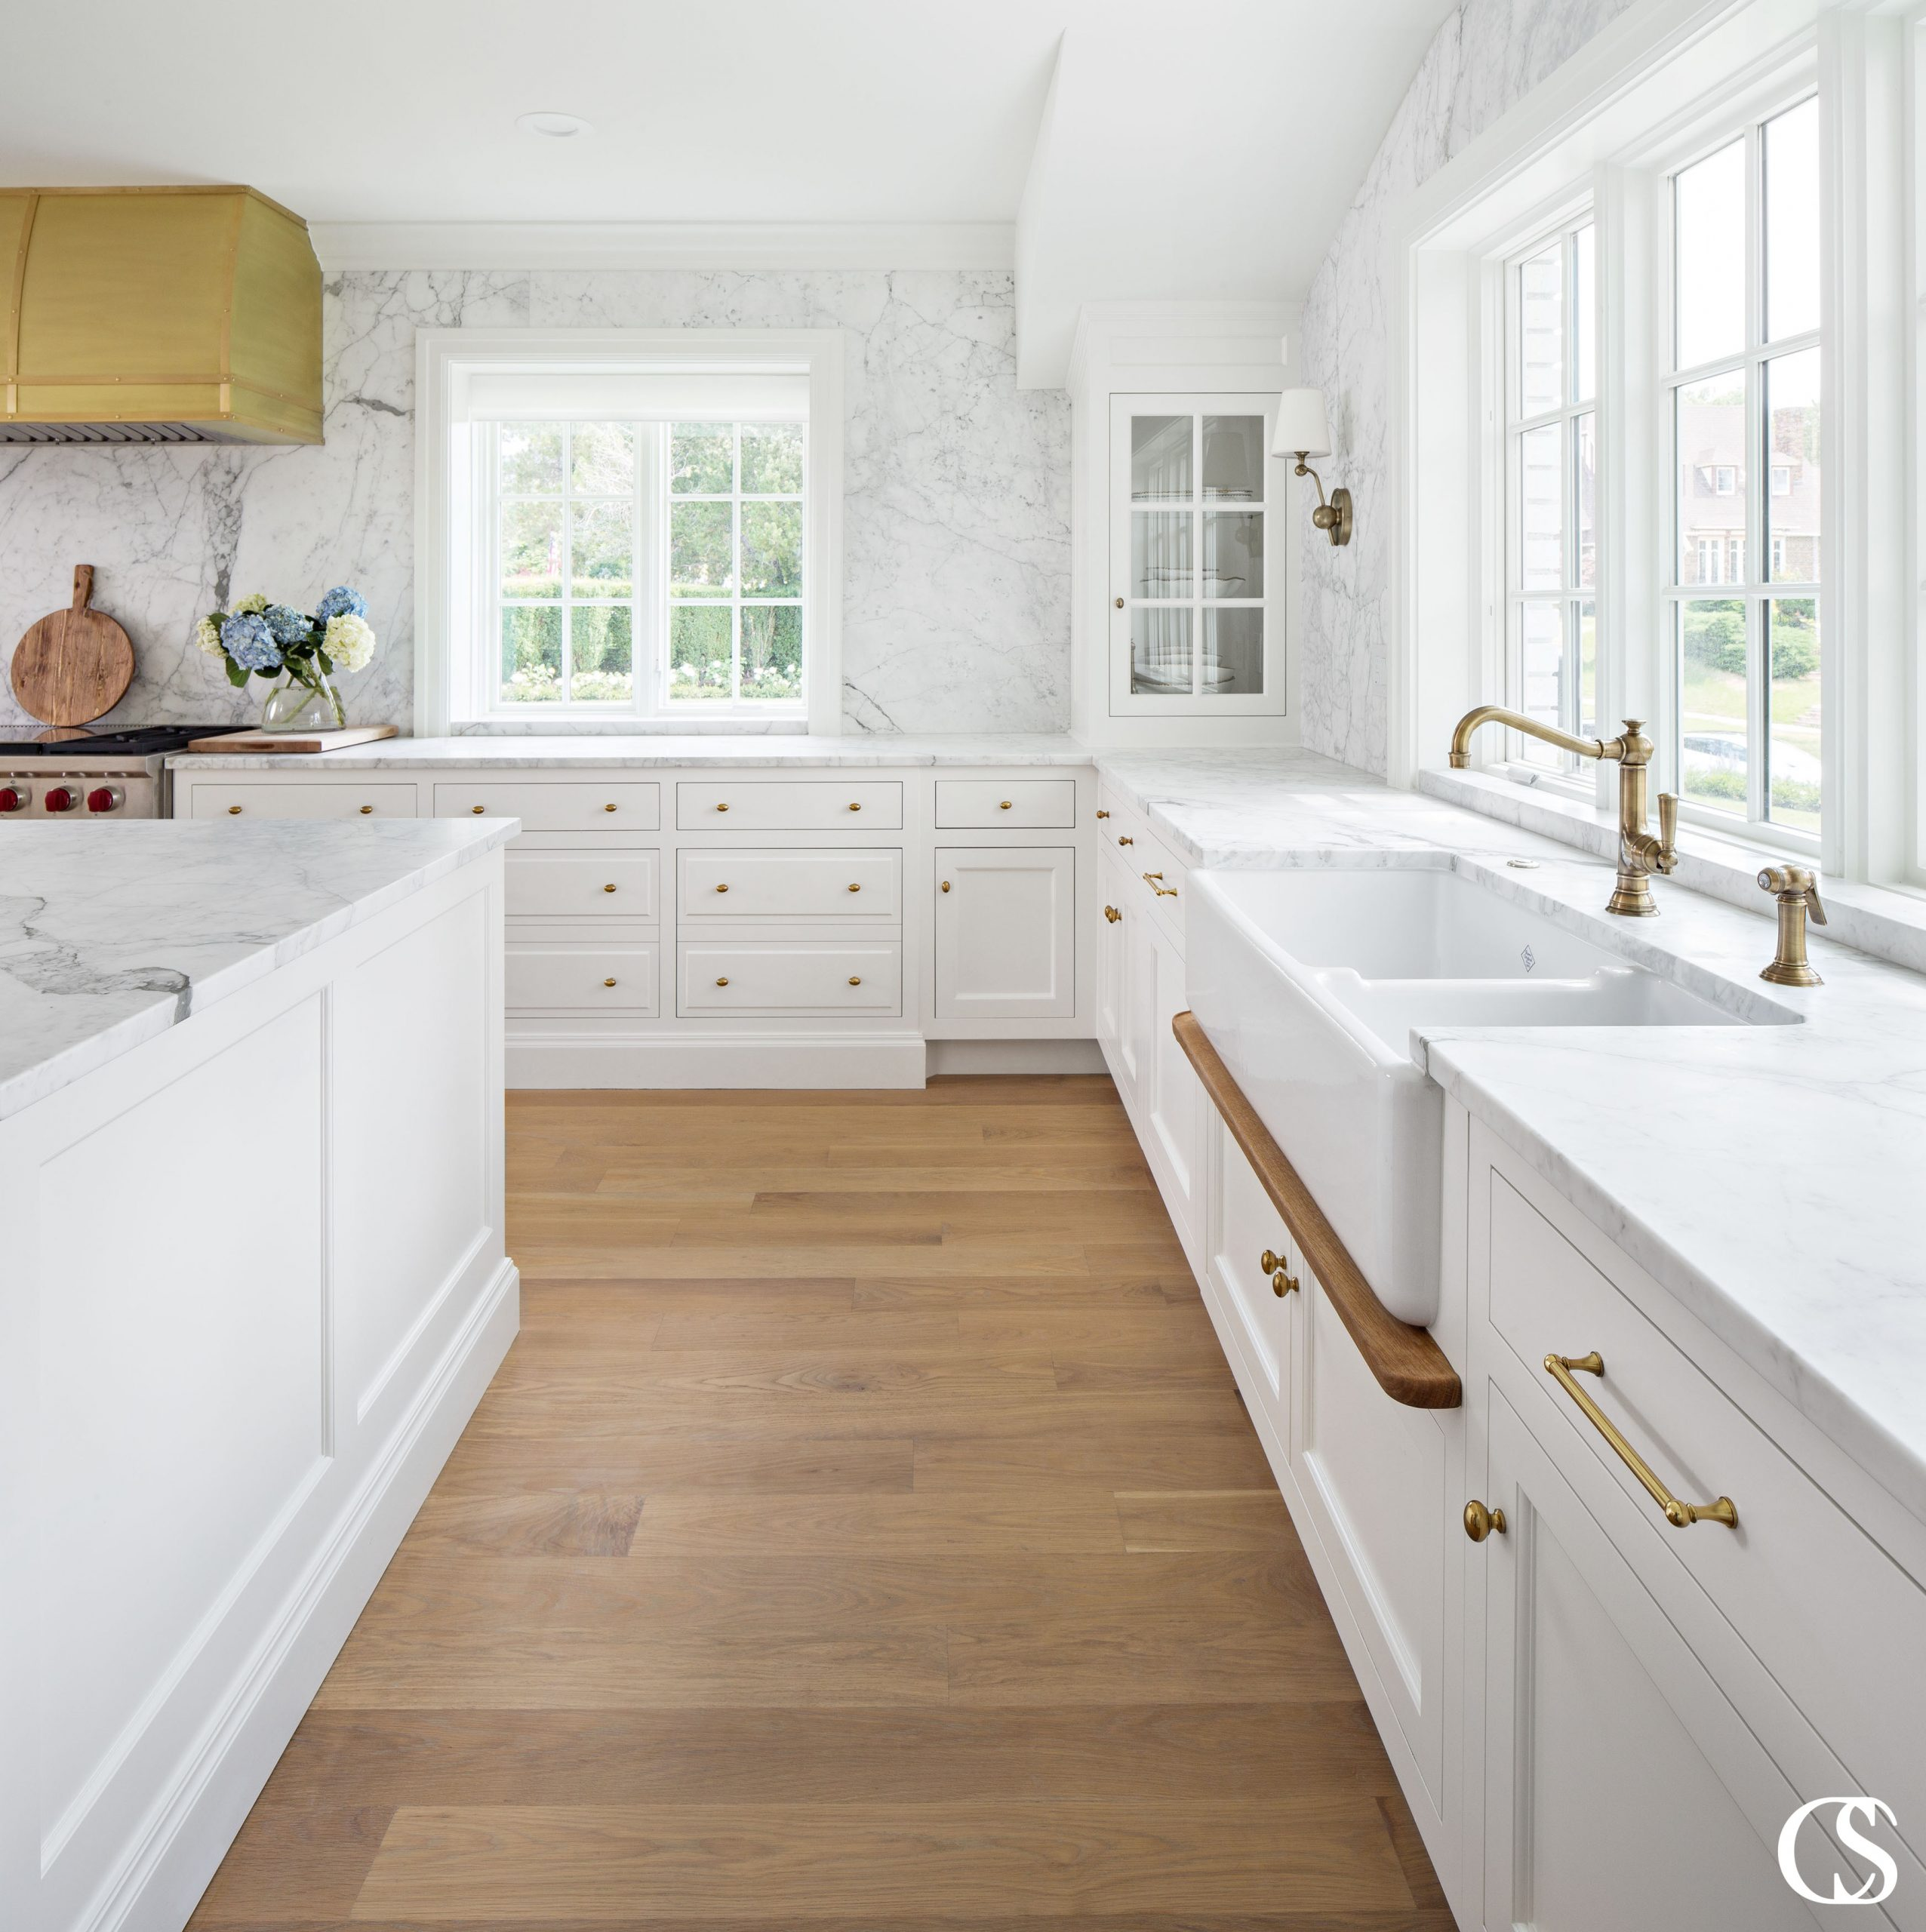 Kitchen design idea: A large island is the prefect way to make the best use of space in a large white kitchen like this.